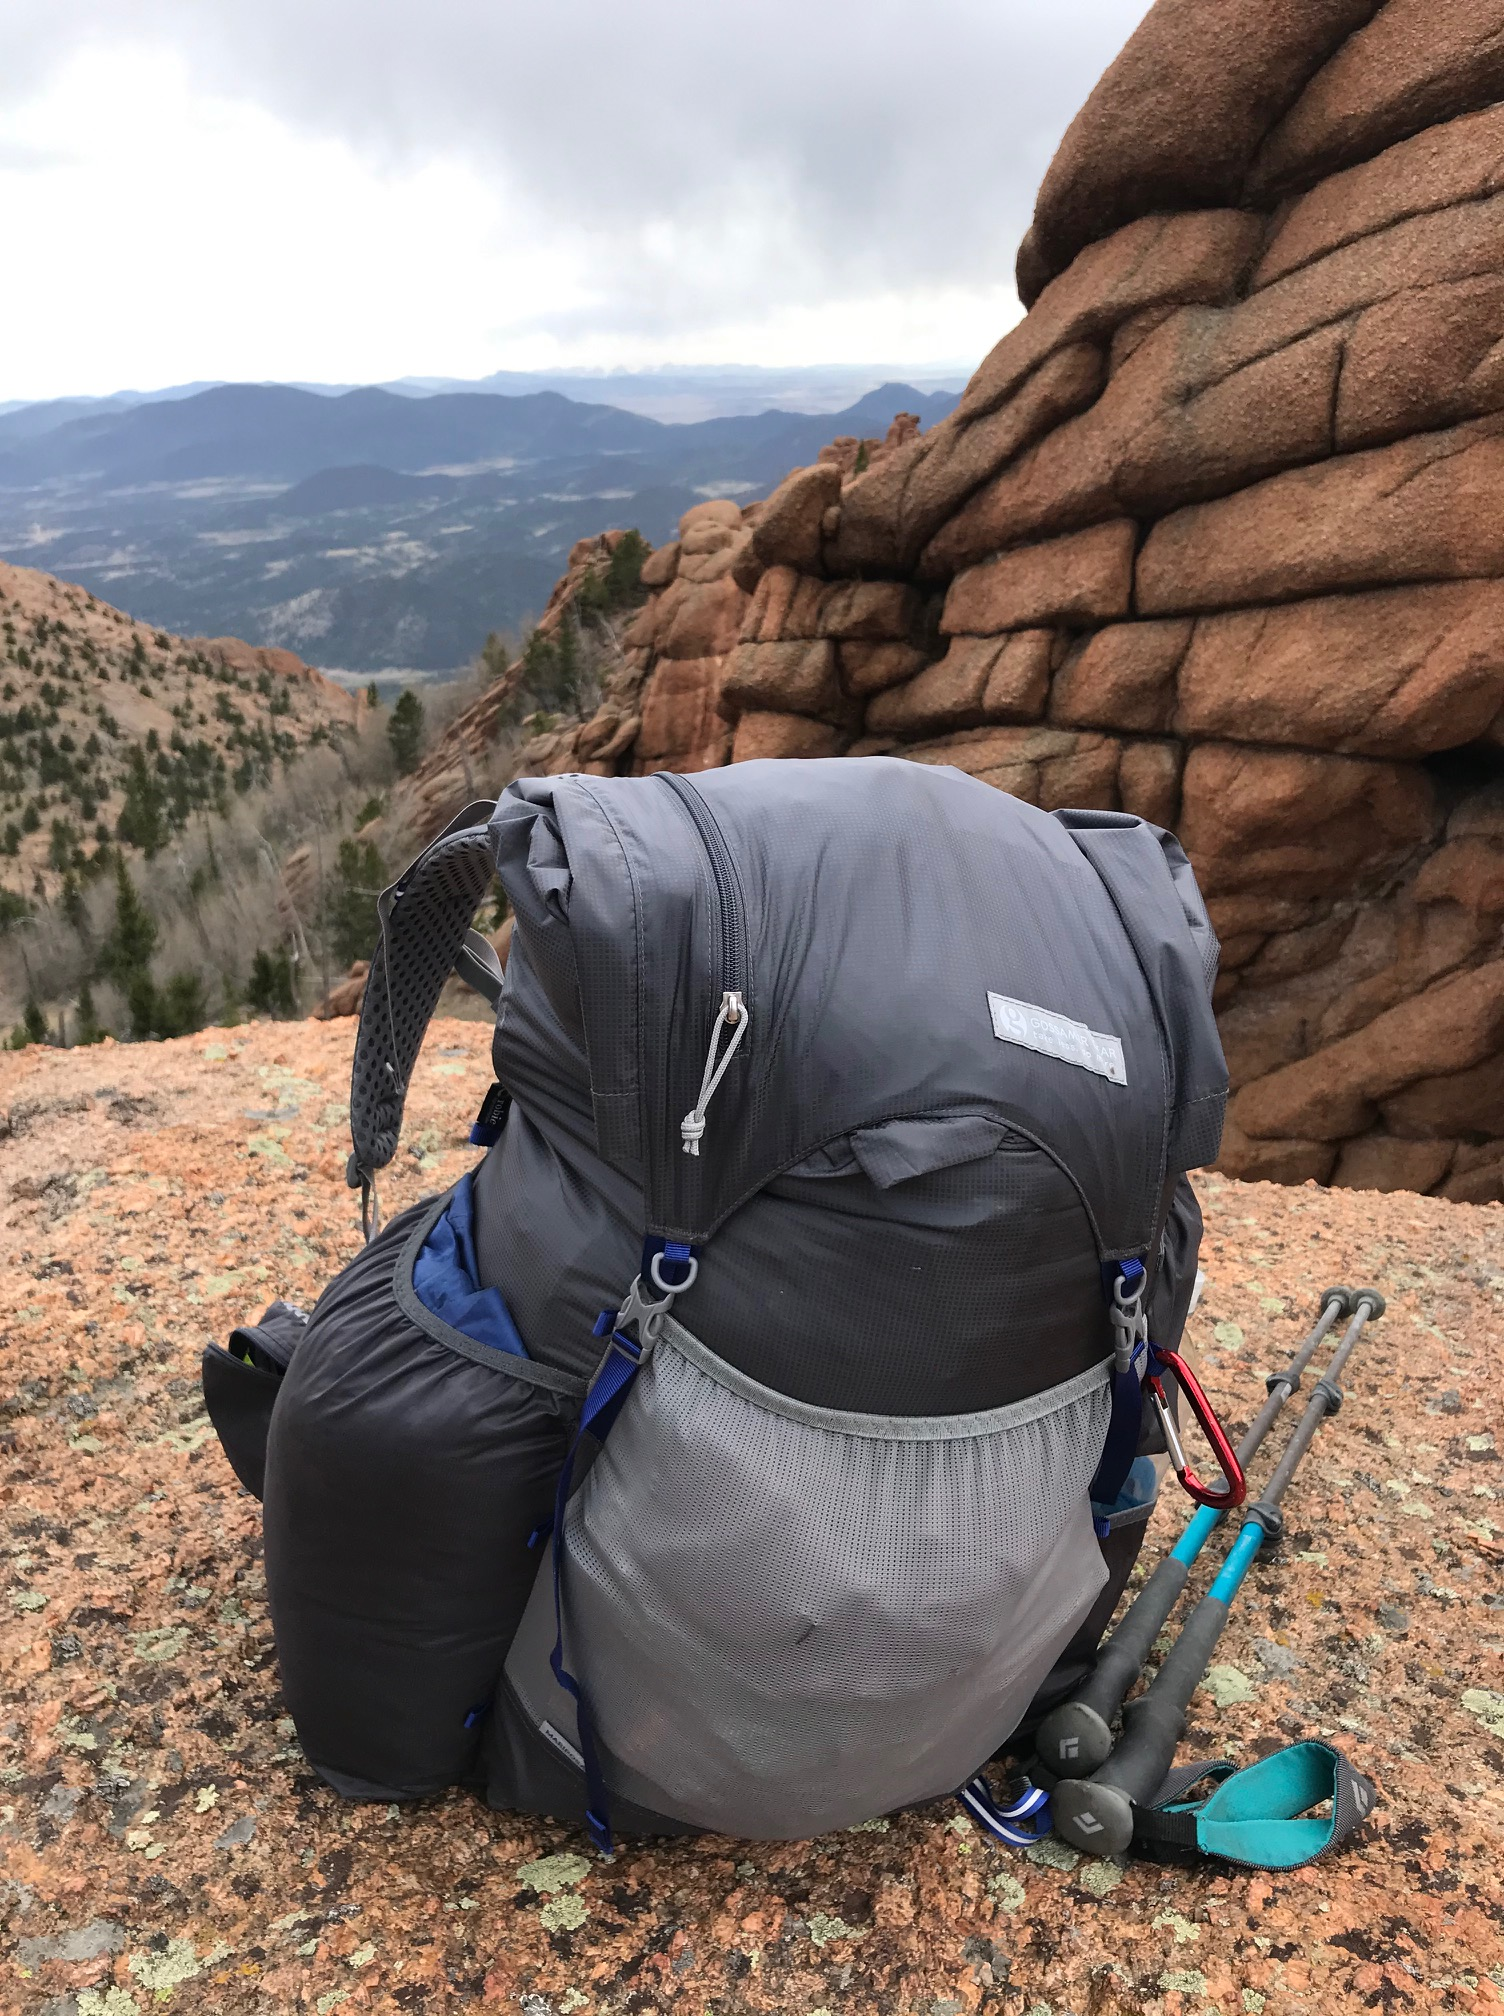 Gear List for Backpacking